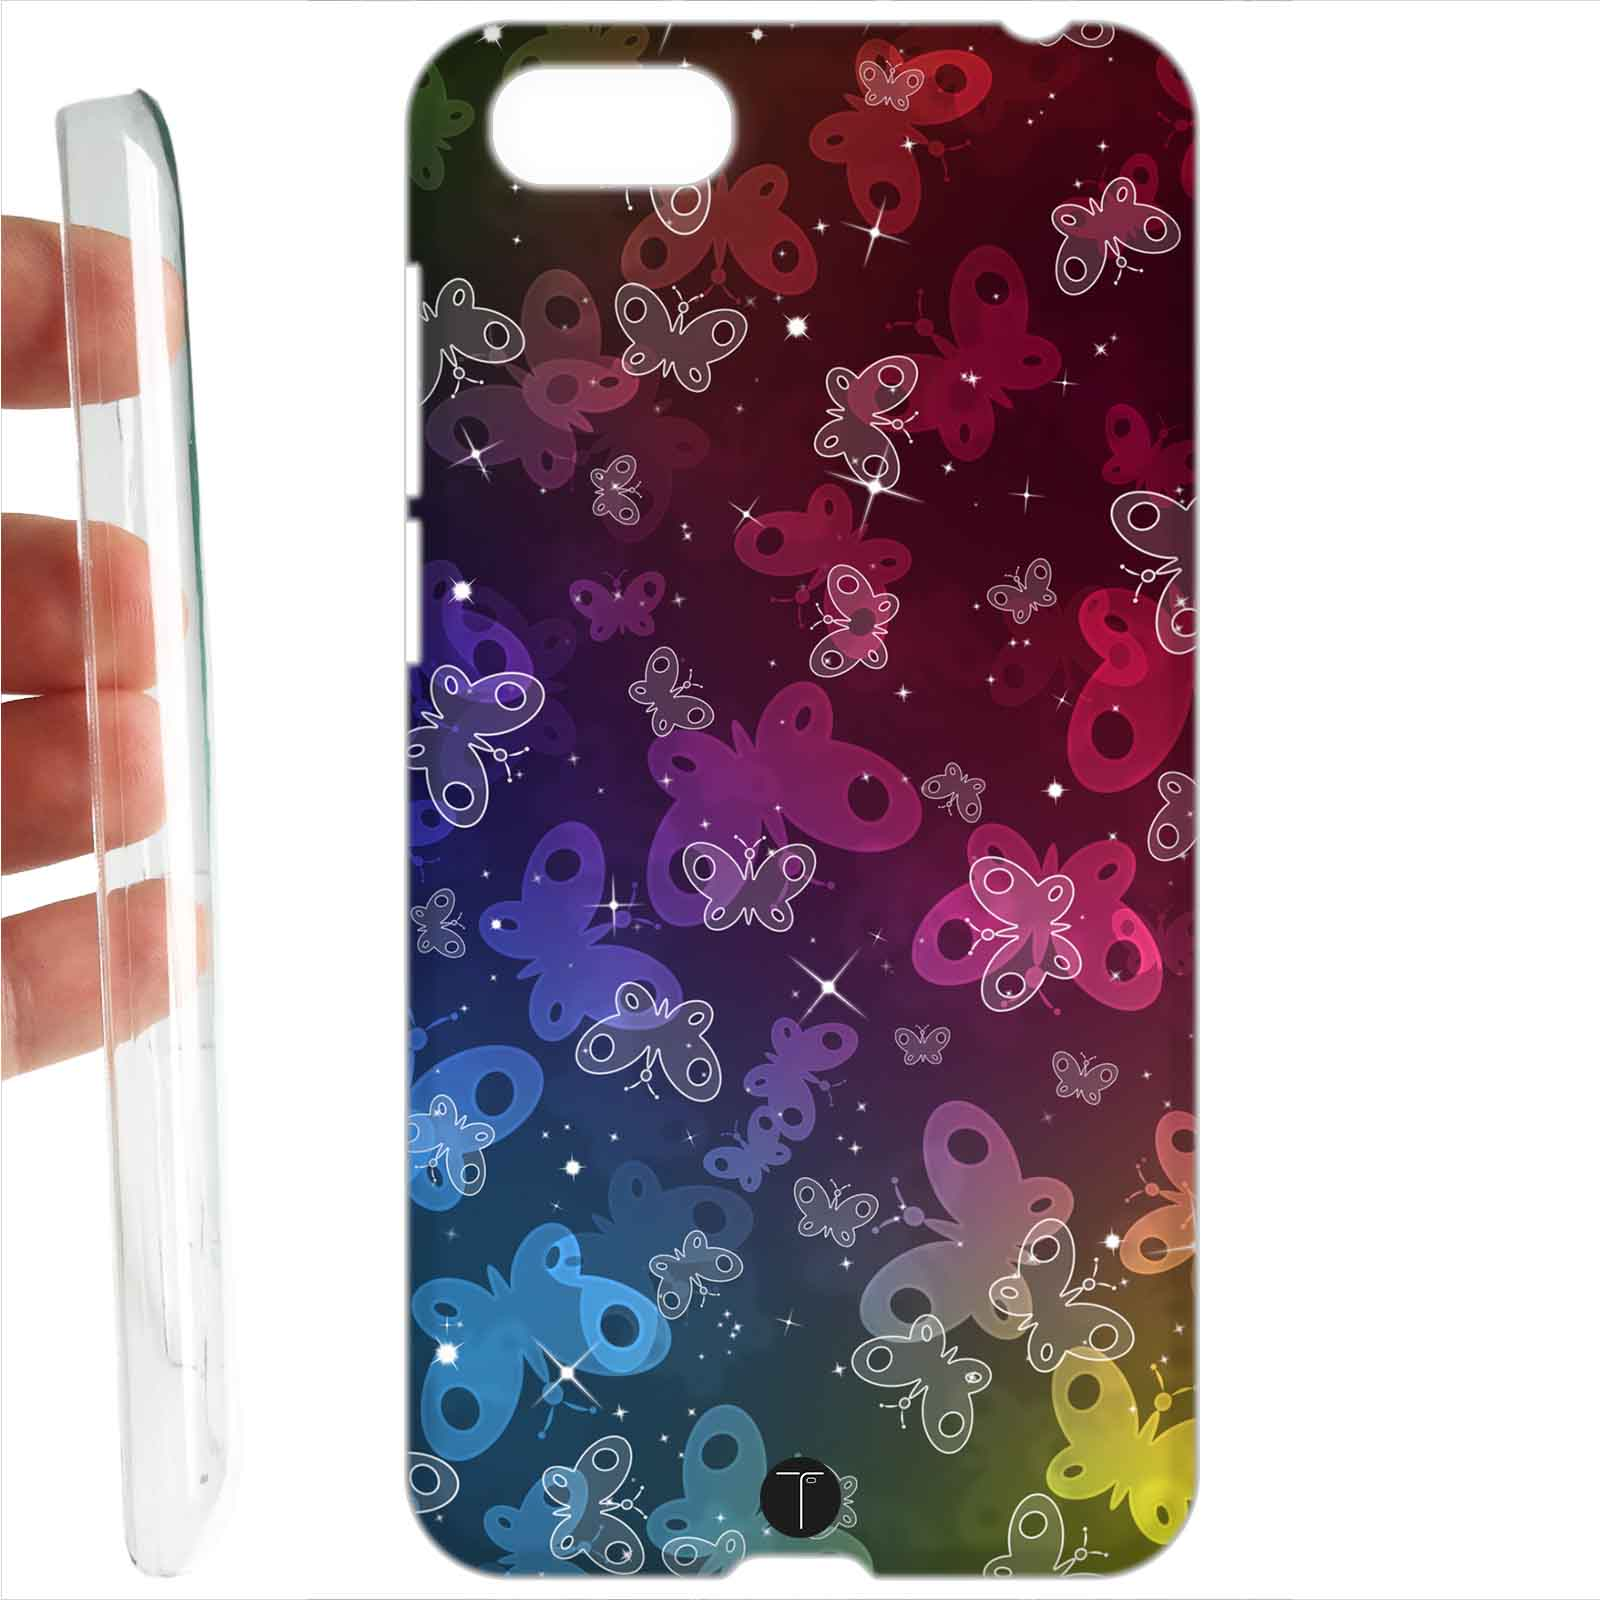 Custodia-cover-RIGIDA-per-Huawei-Honor-7s-Design-1-18